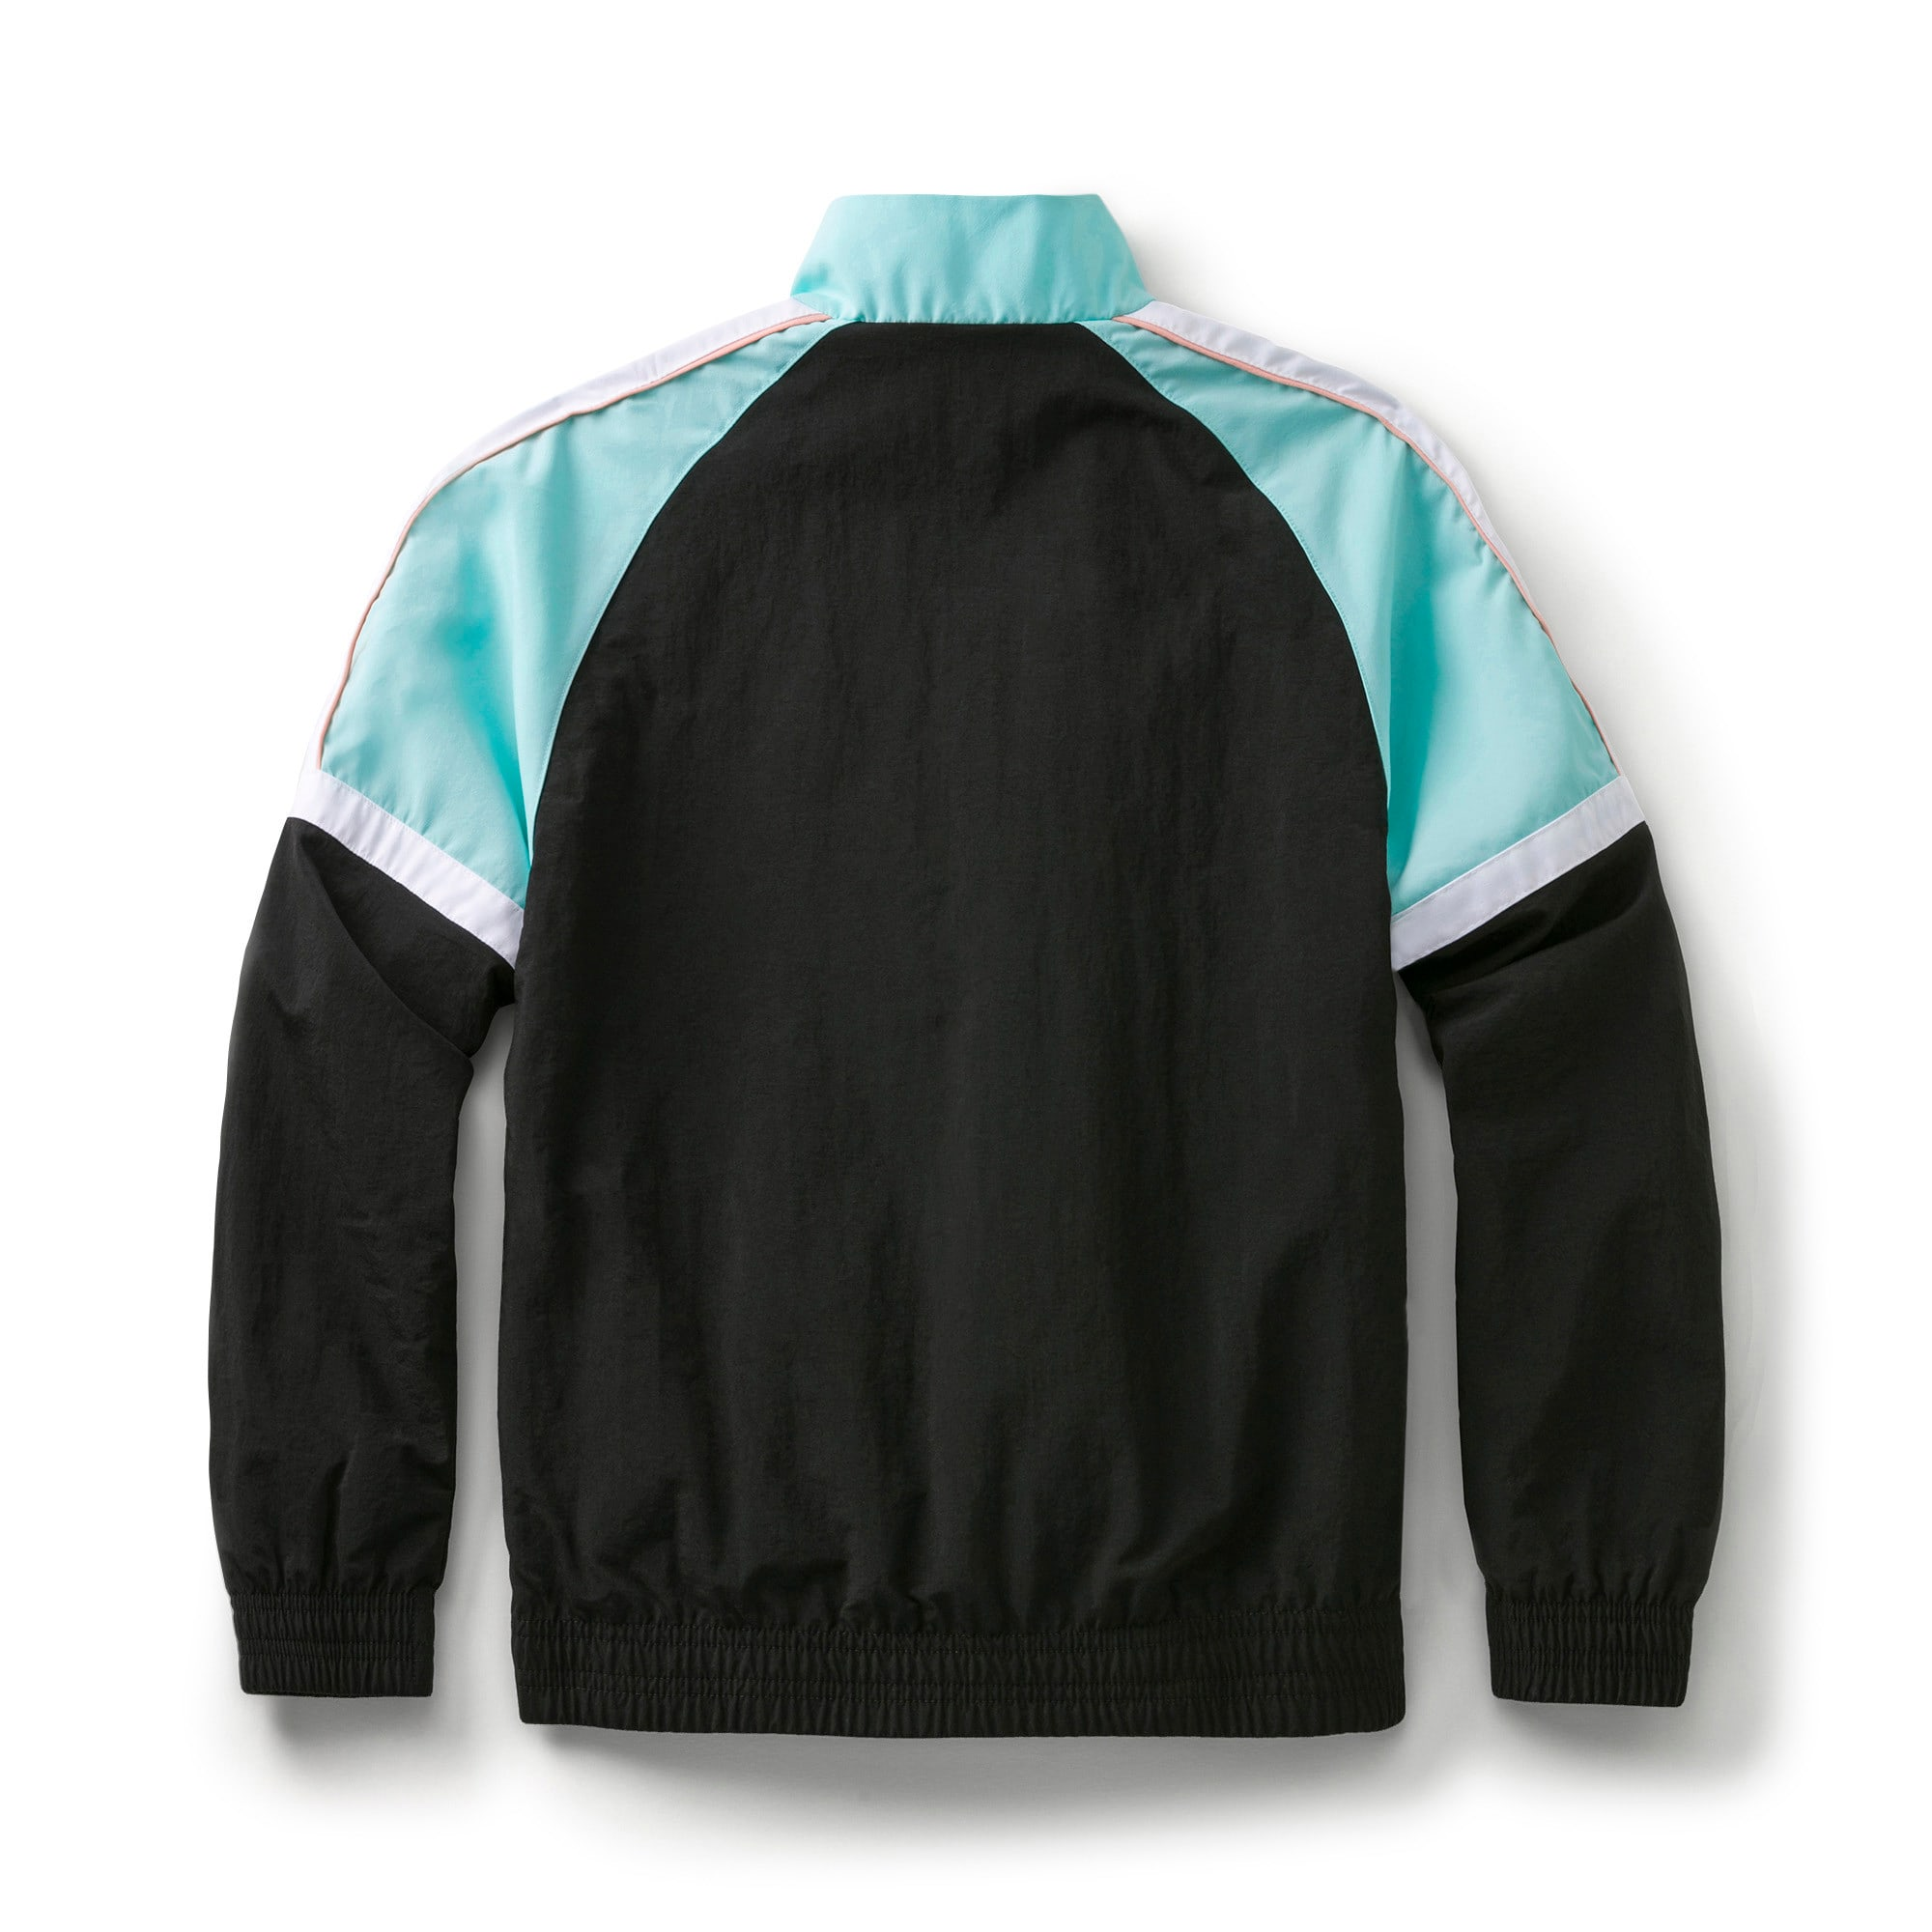 Thumbnail 2 of PUMA x DIAMOND SUPPLY CO. Boy's XTG Track Top, Puma Black, medium